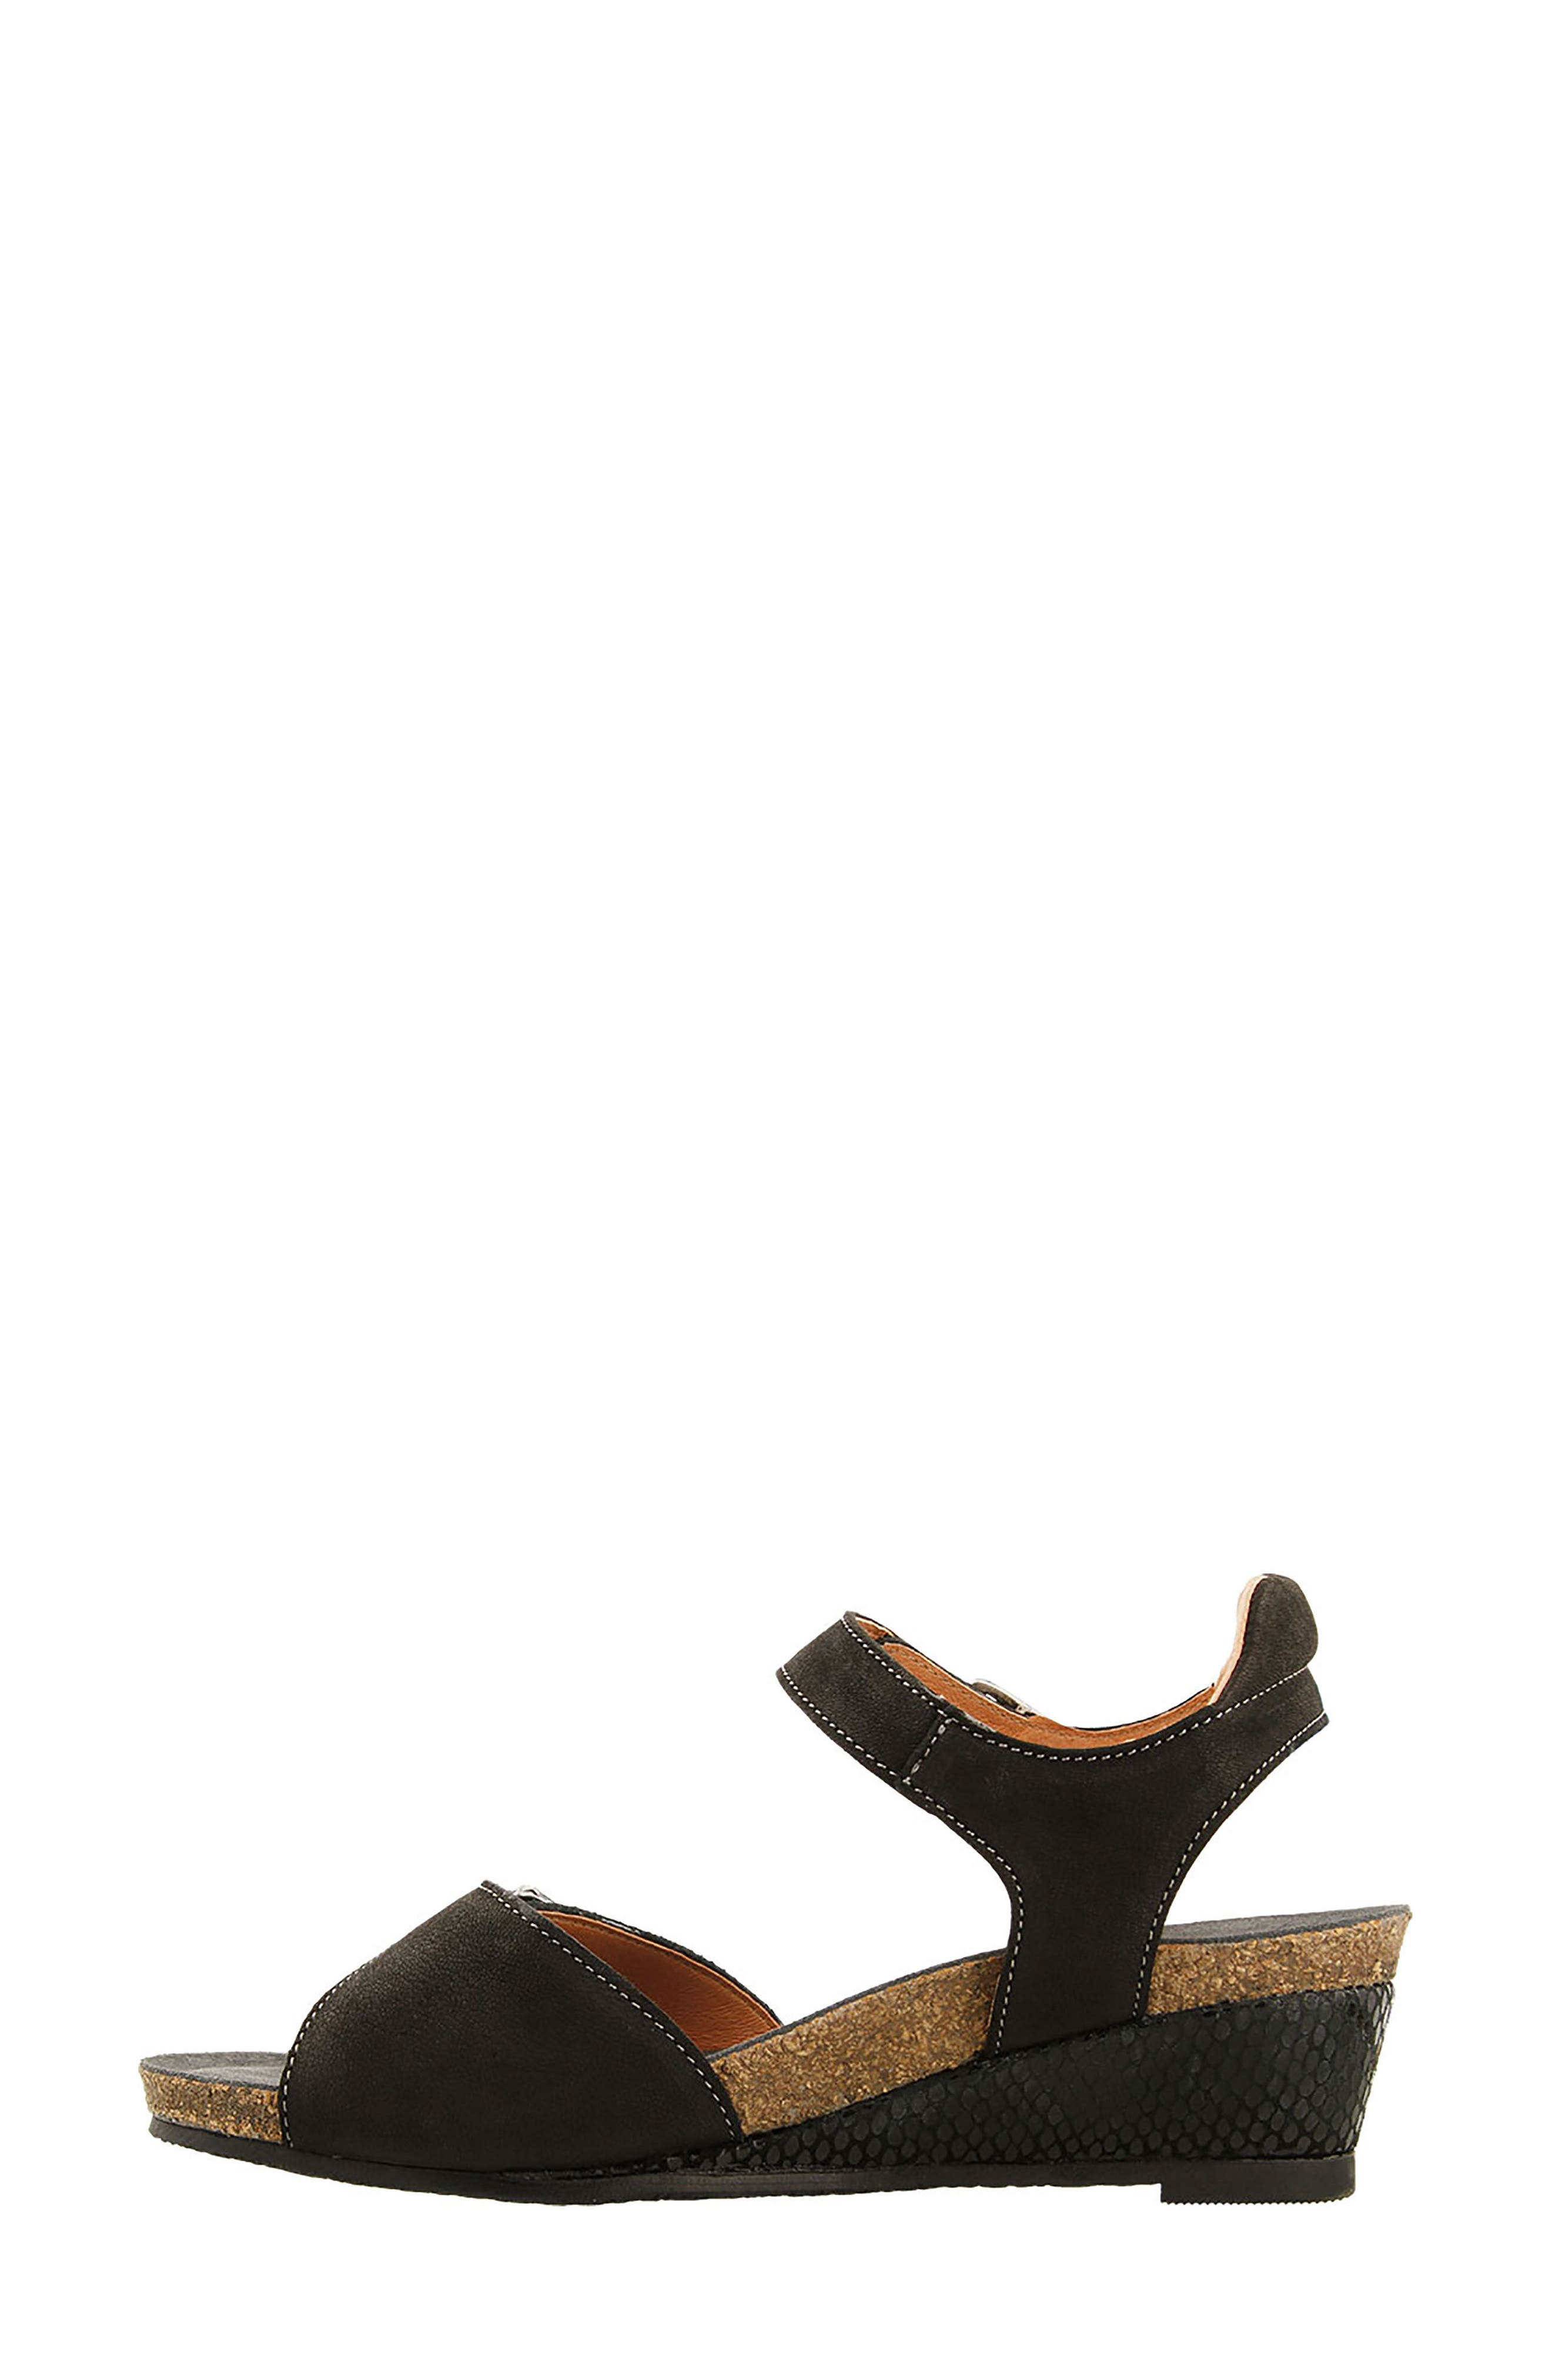 Traveler Wedge Sandal,                             Alternate thumbnail 3, color,                             002